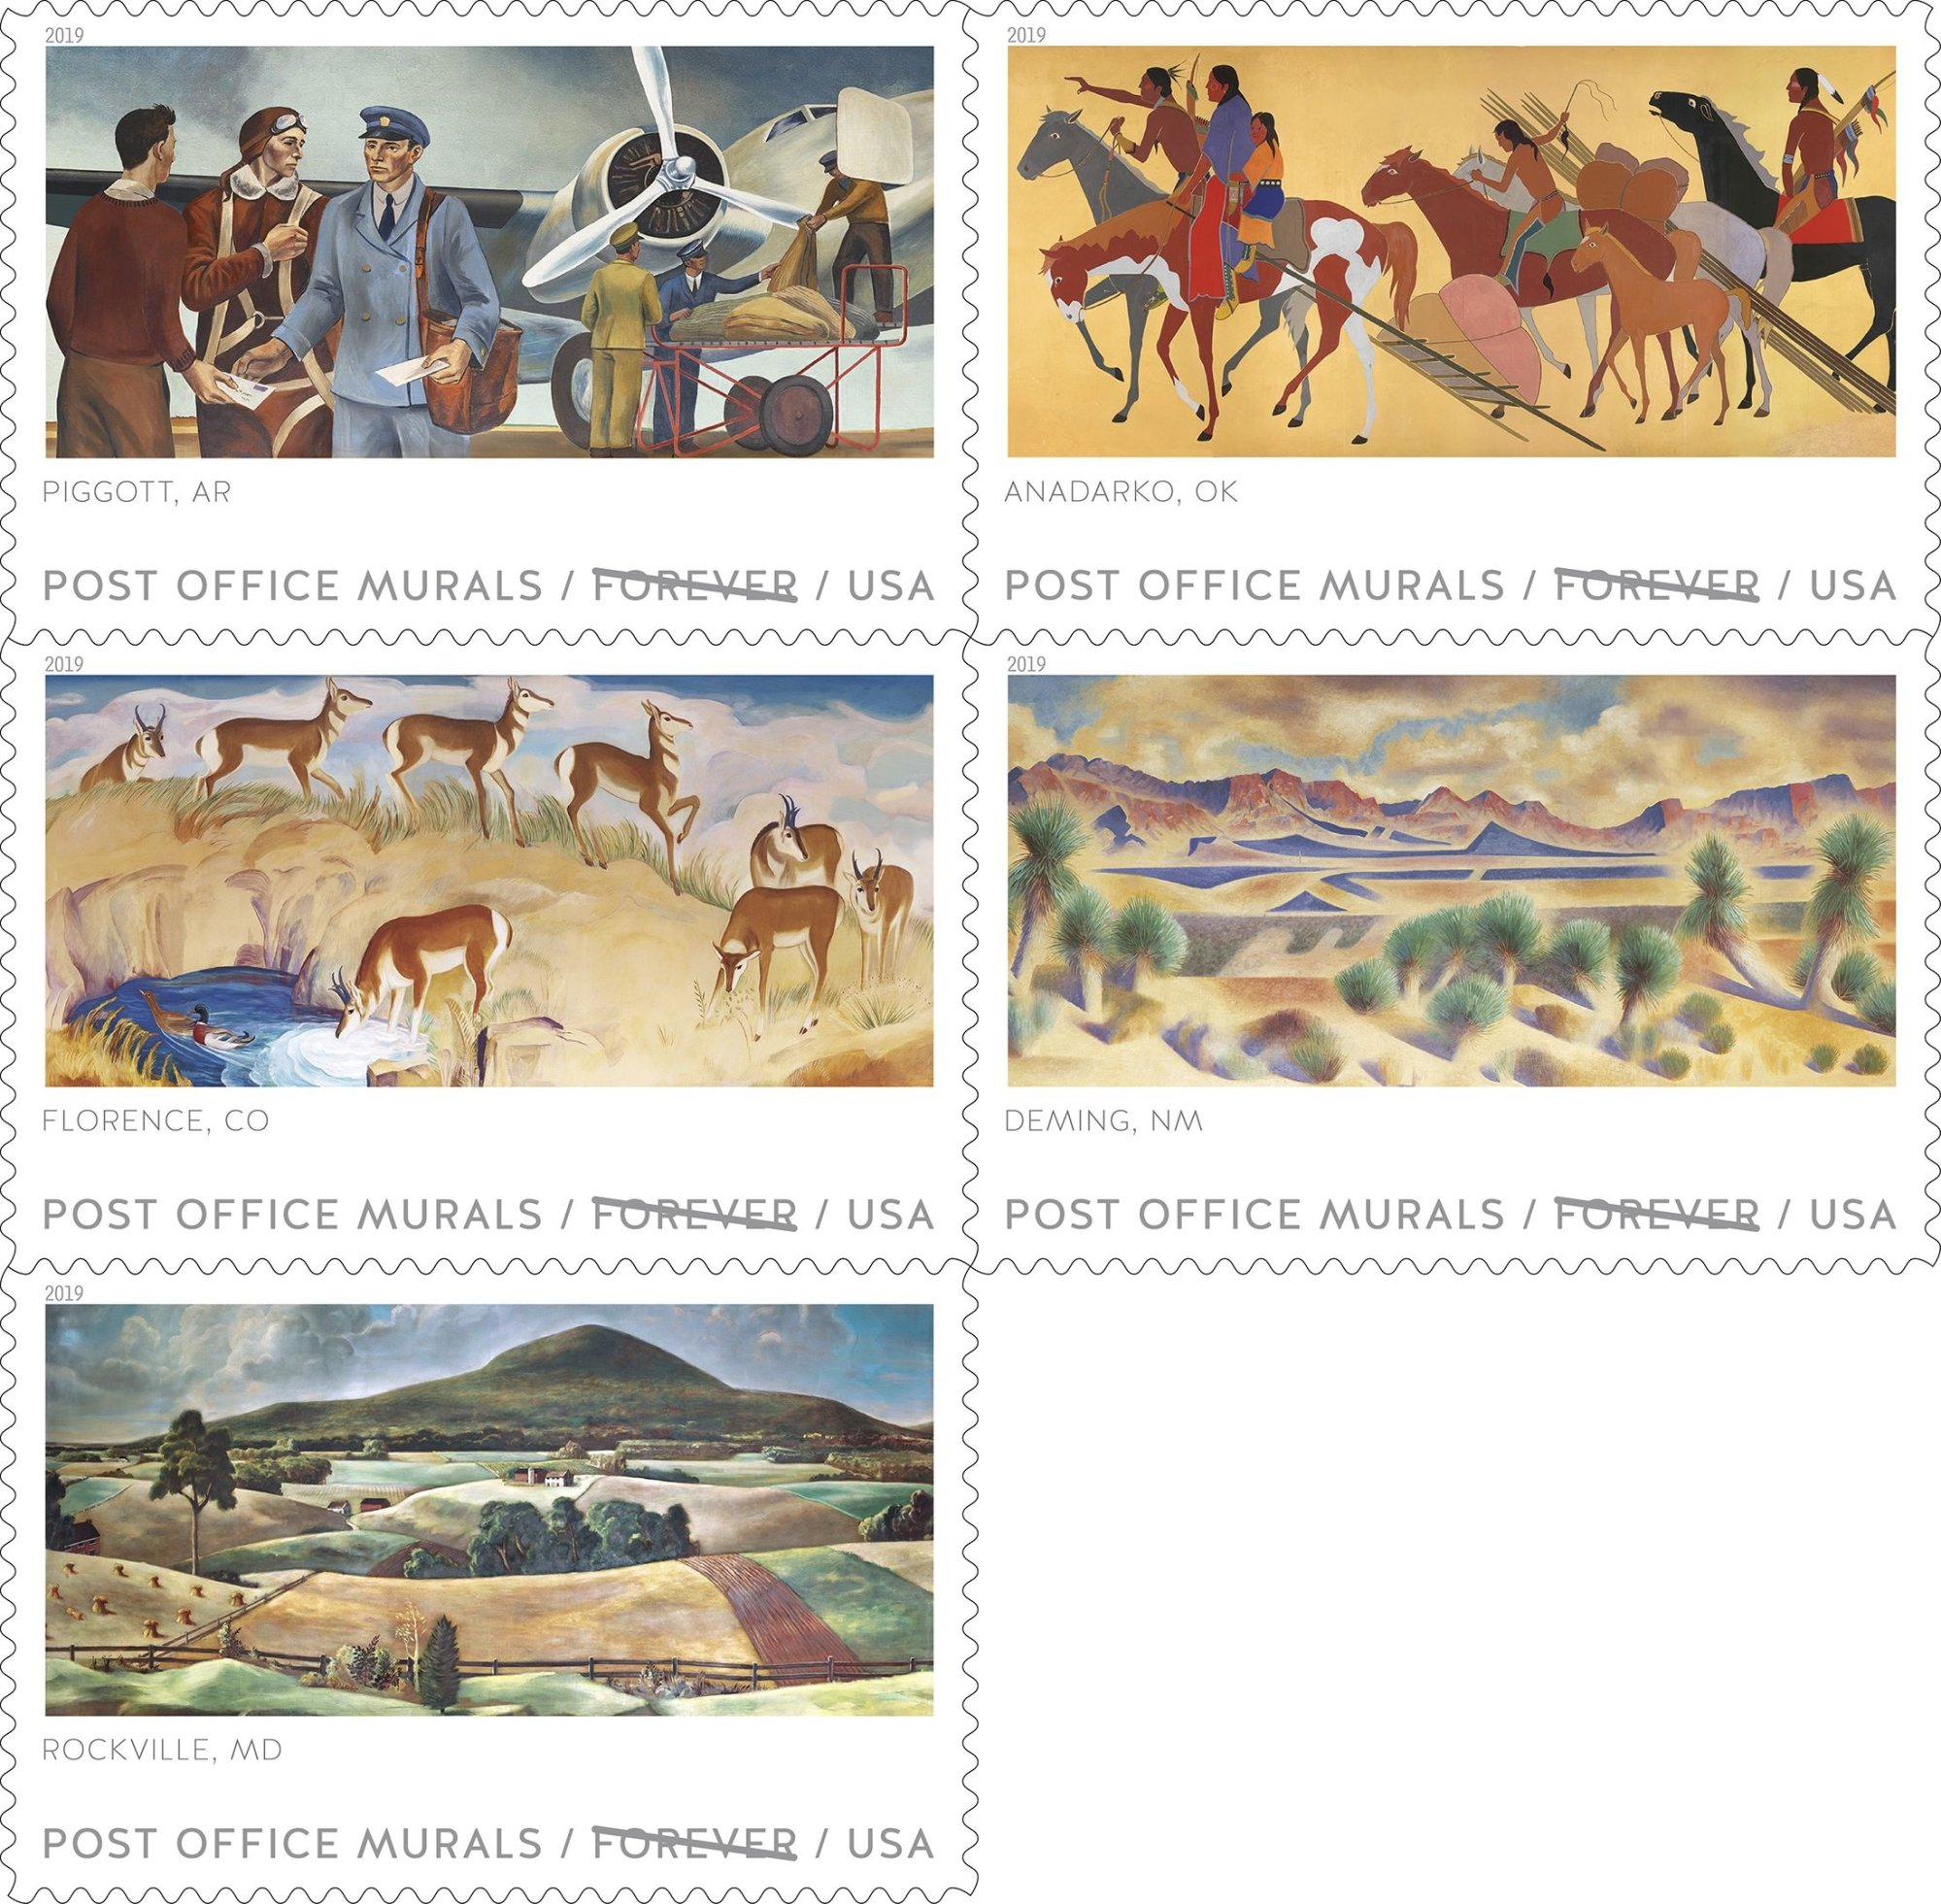 A new set of five stamps depicting Post Office murals will feature one from Piggott, Arkansas, and another from Anadarko, Oklahoma. (Courtesy of the USPS.)